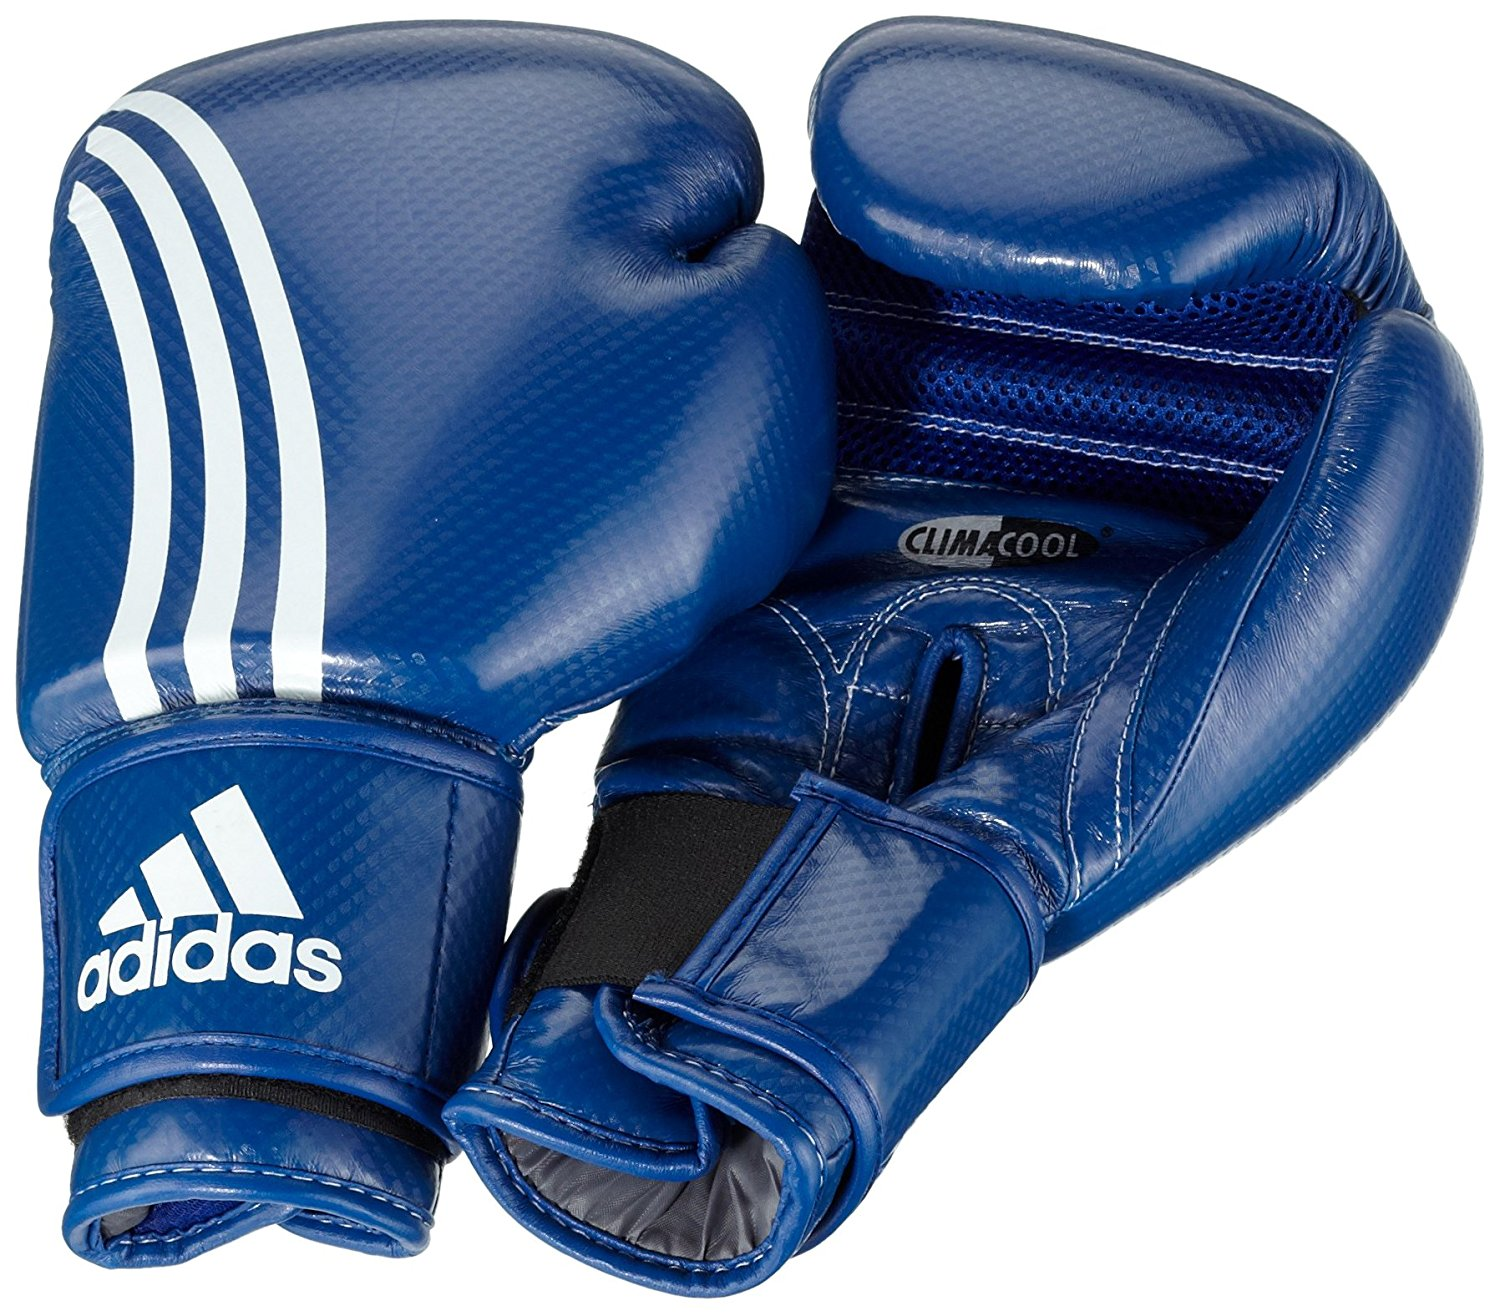 adidas climacool boxing gloves